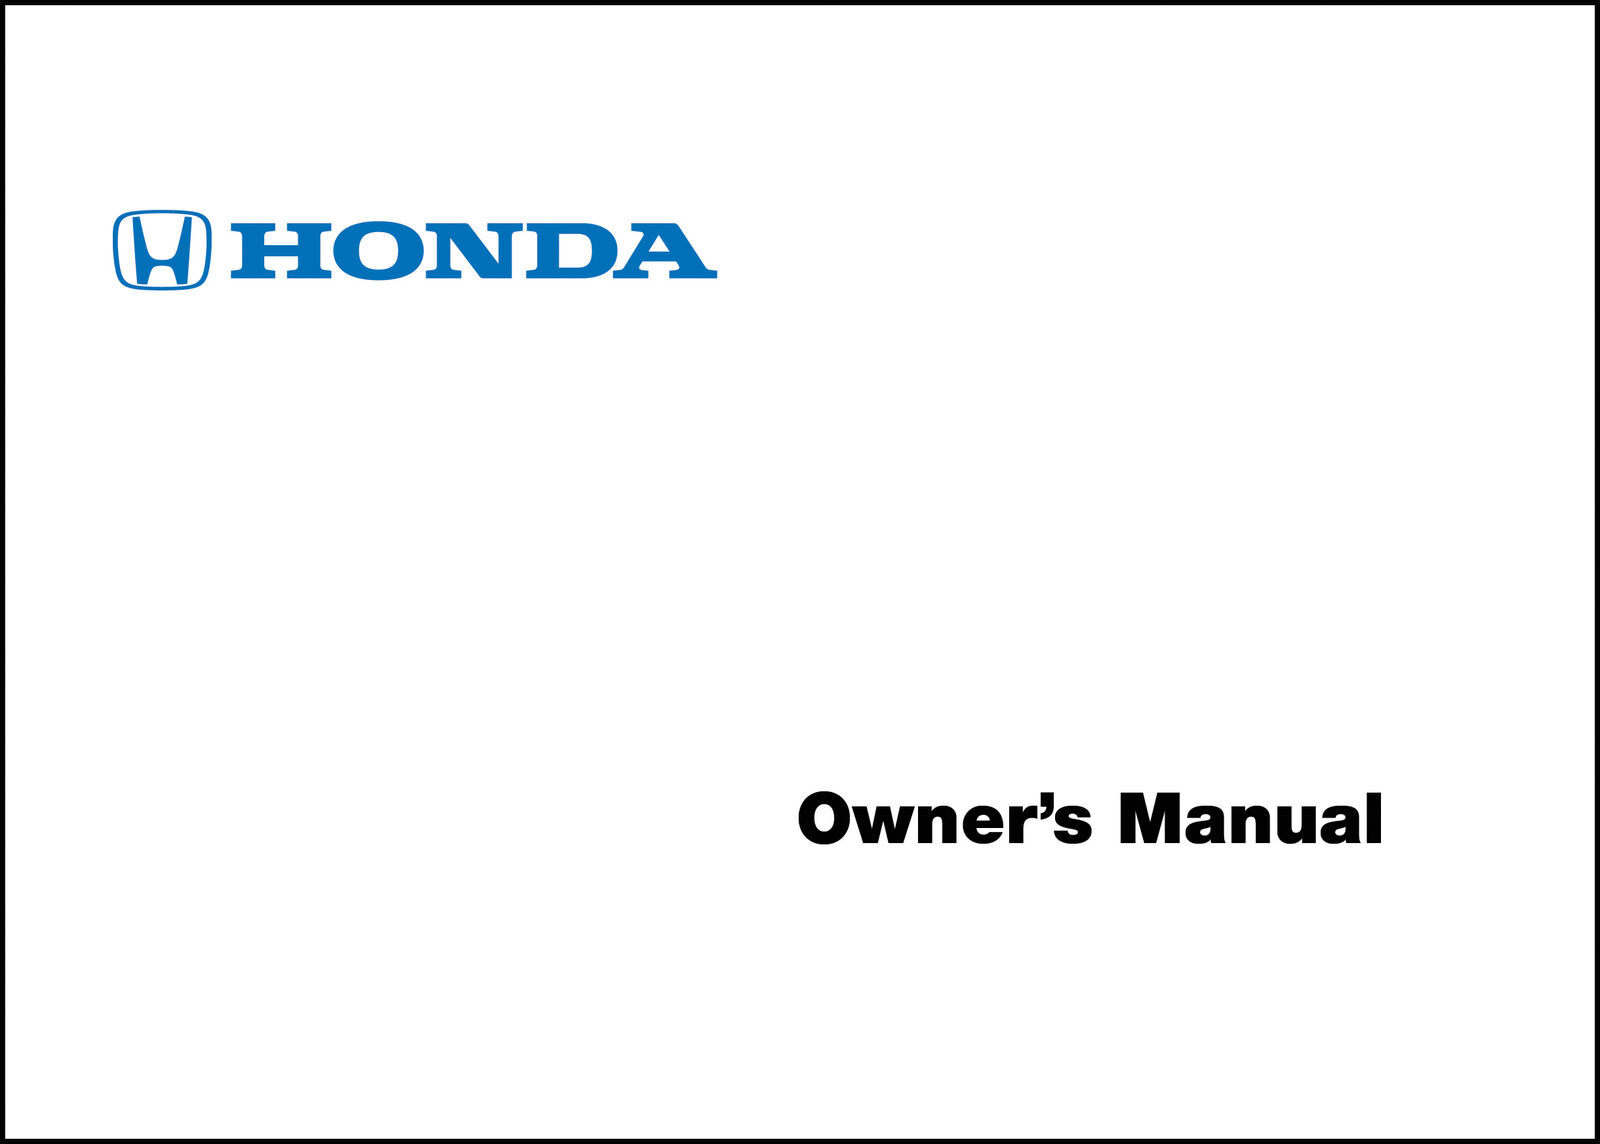 Honda 2001 Accord 4 Door Ka Kl Owner Manual 01 4095 Picclick 2003 Mountaineer And Explorer Wiring Diagram Original 1 Of 1free Shipping